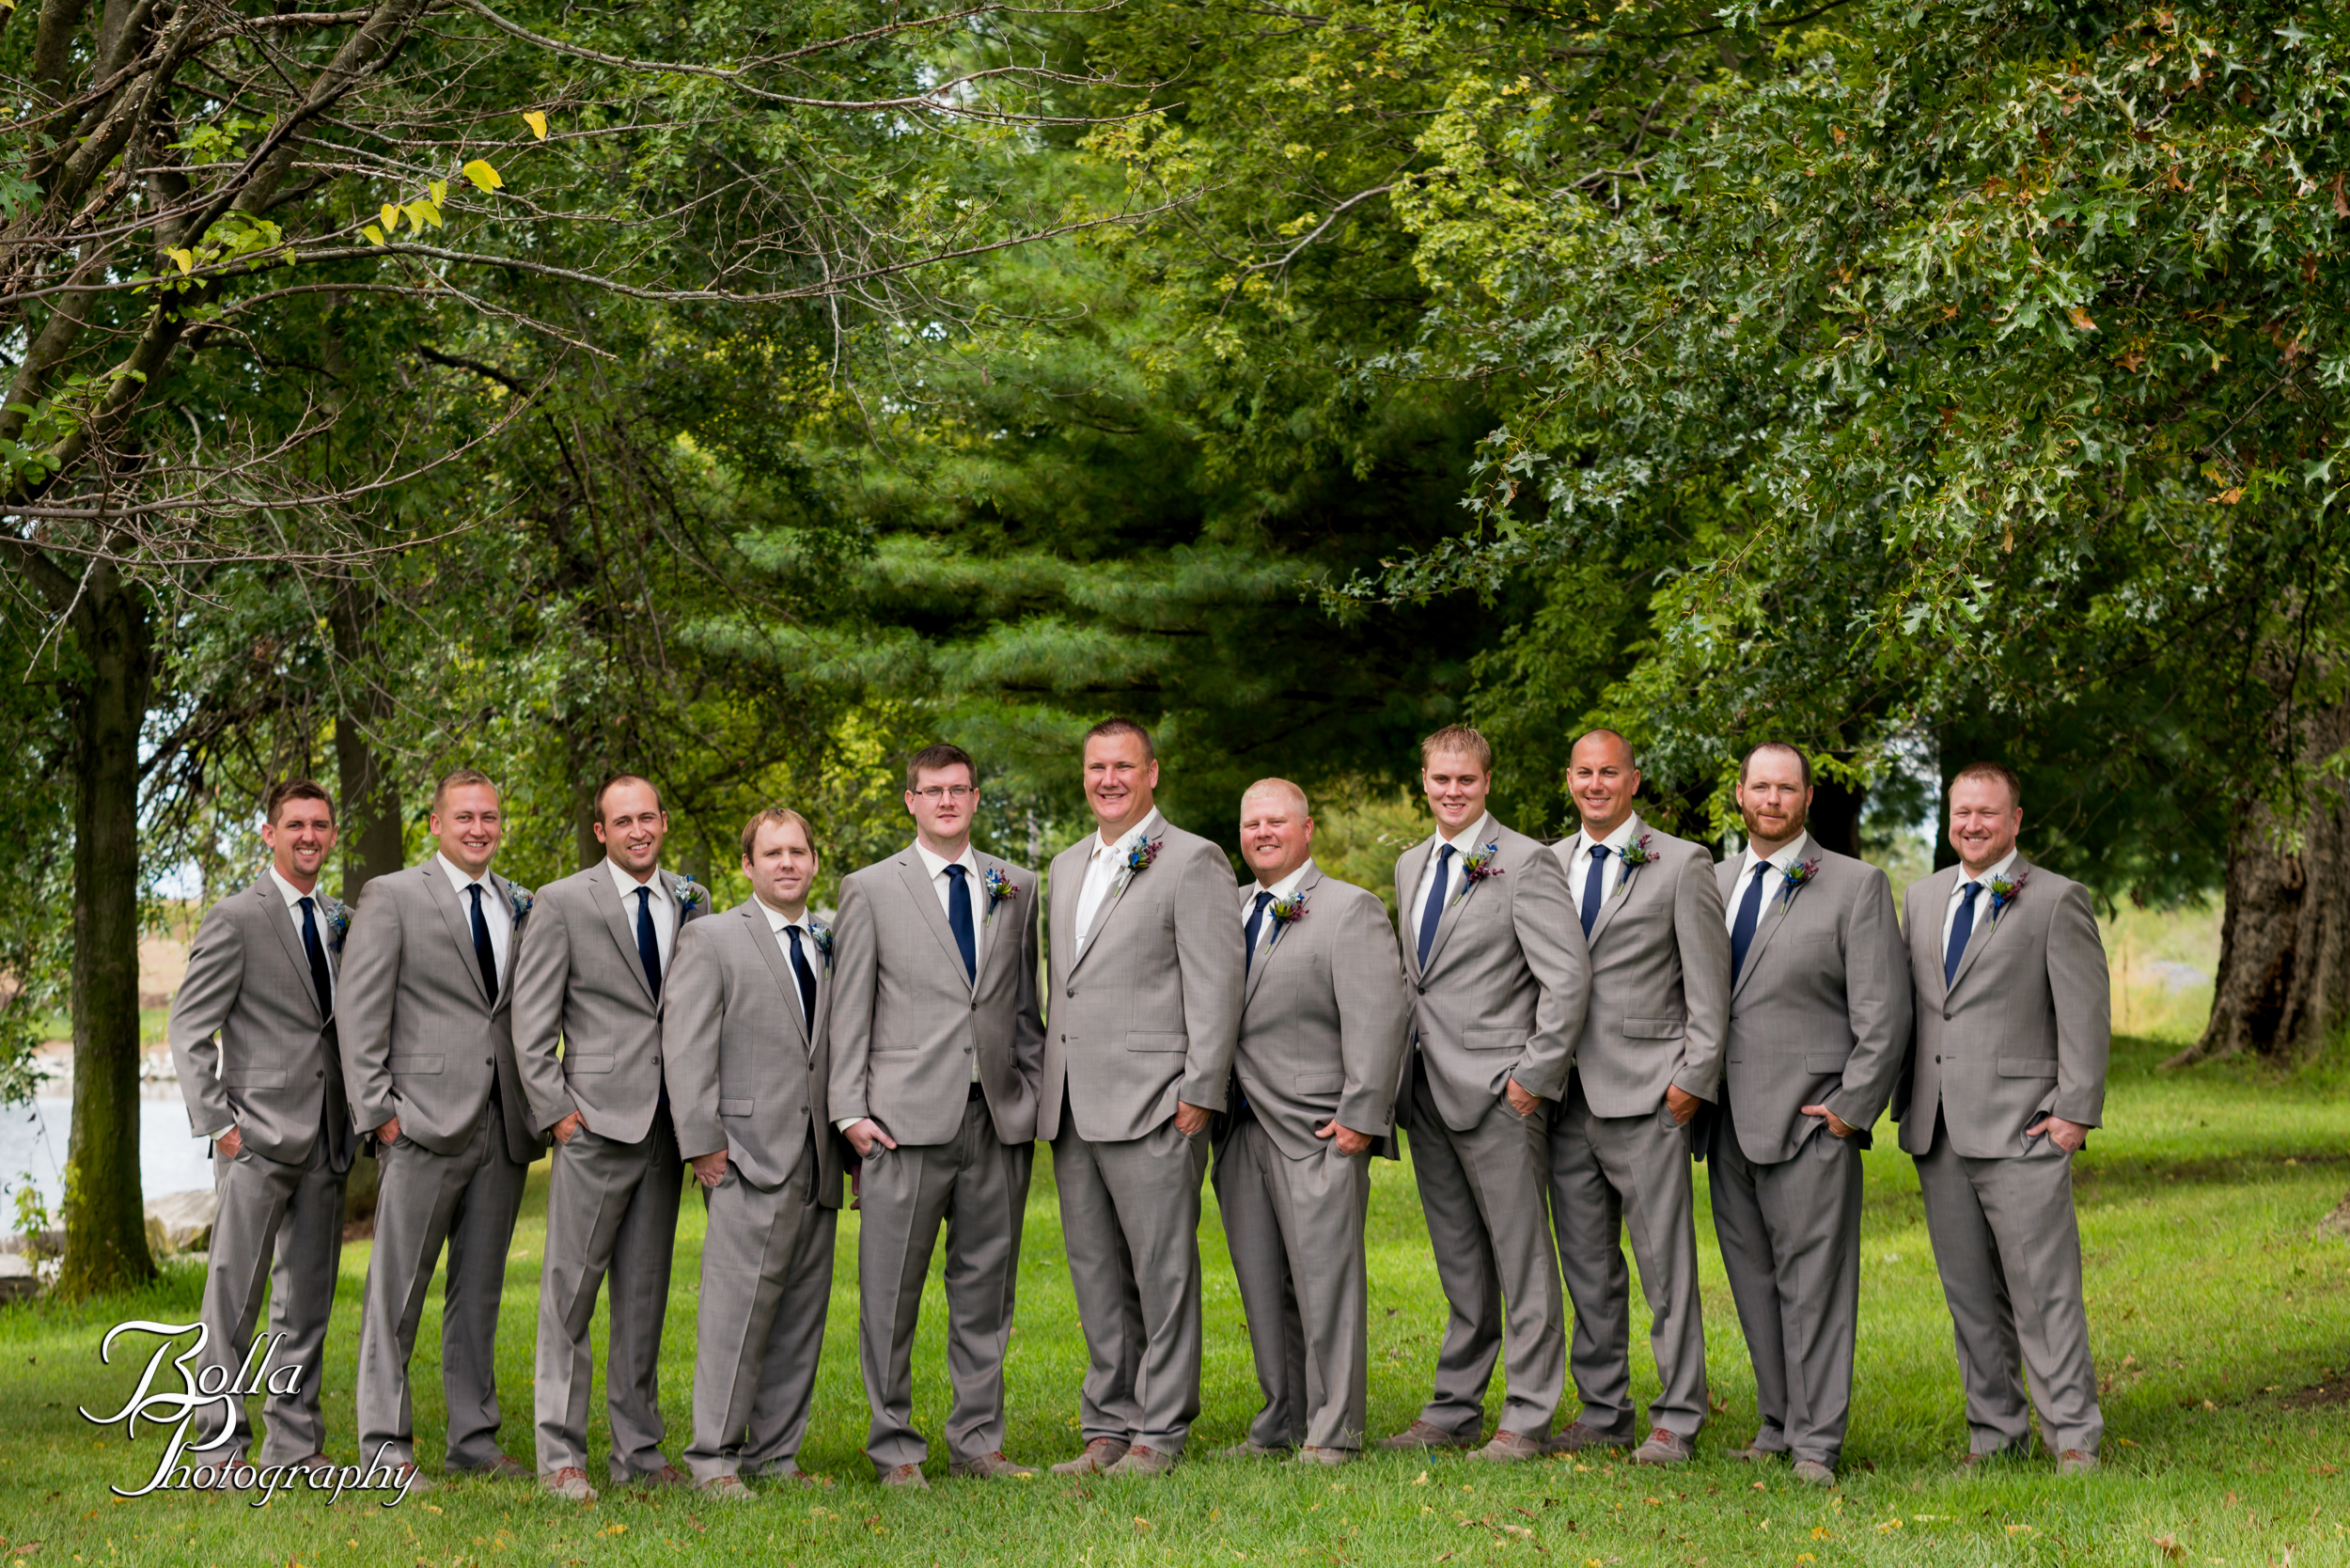 Bolla_photography_edwardsville_wedding_photographer_st_louis_weddings_Heinzmann-0136.jpg